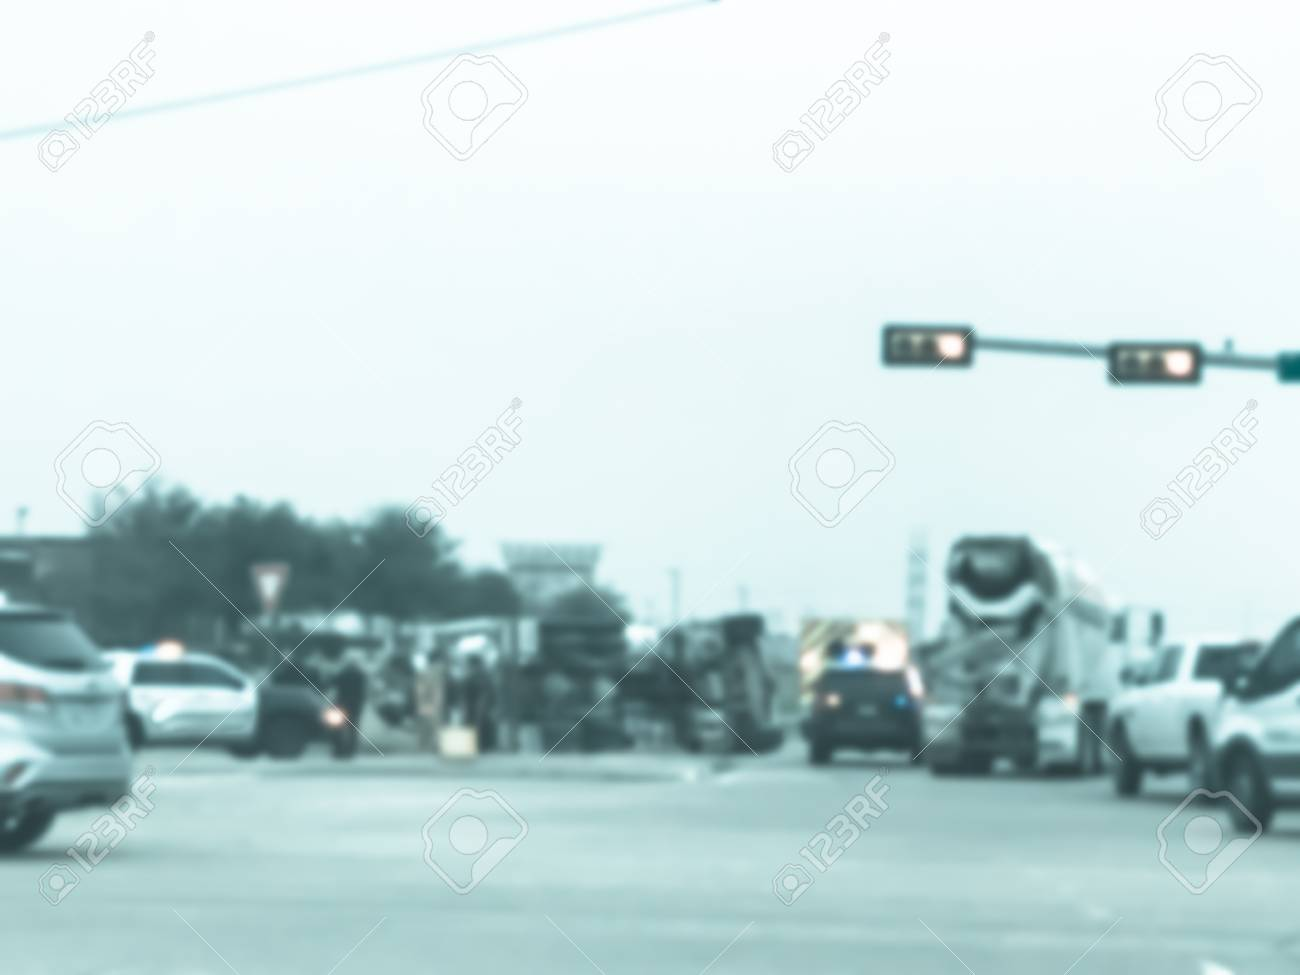 Vintage tone blurred abstract dramatic car accident at street